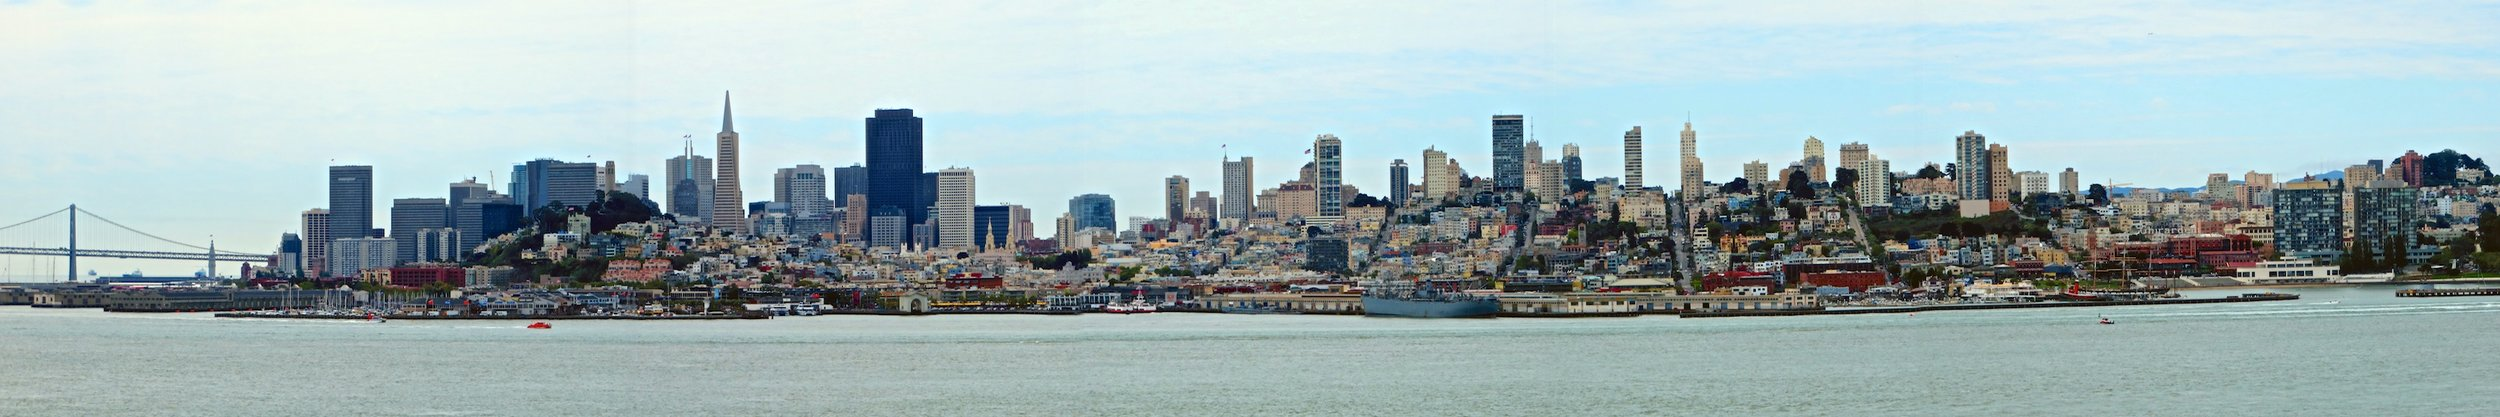 San Francisco panorama from Alcatraz Island